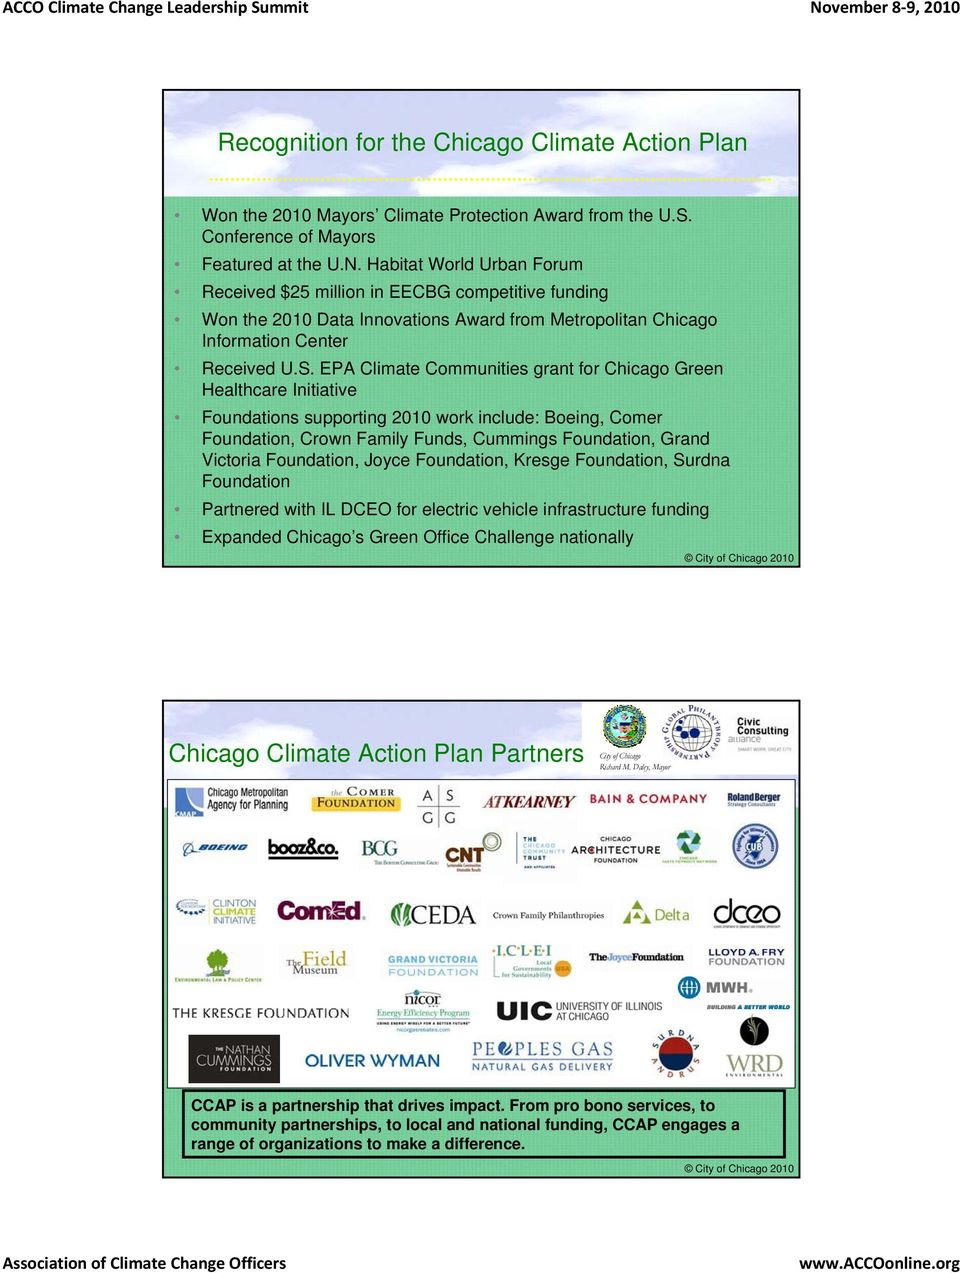 EPA Climate Communities grant for Chicago Green Healthcare Initiative Foundations supporting 2010 work include: Boeing, Comer Foundation, Crown Family Funds, Cummings Foundation, Grand Victoria